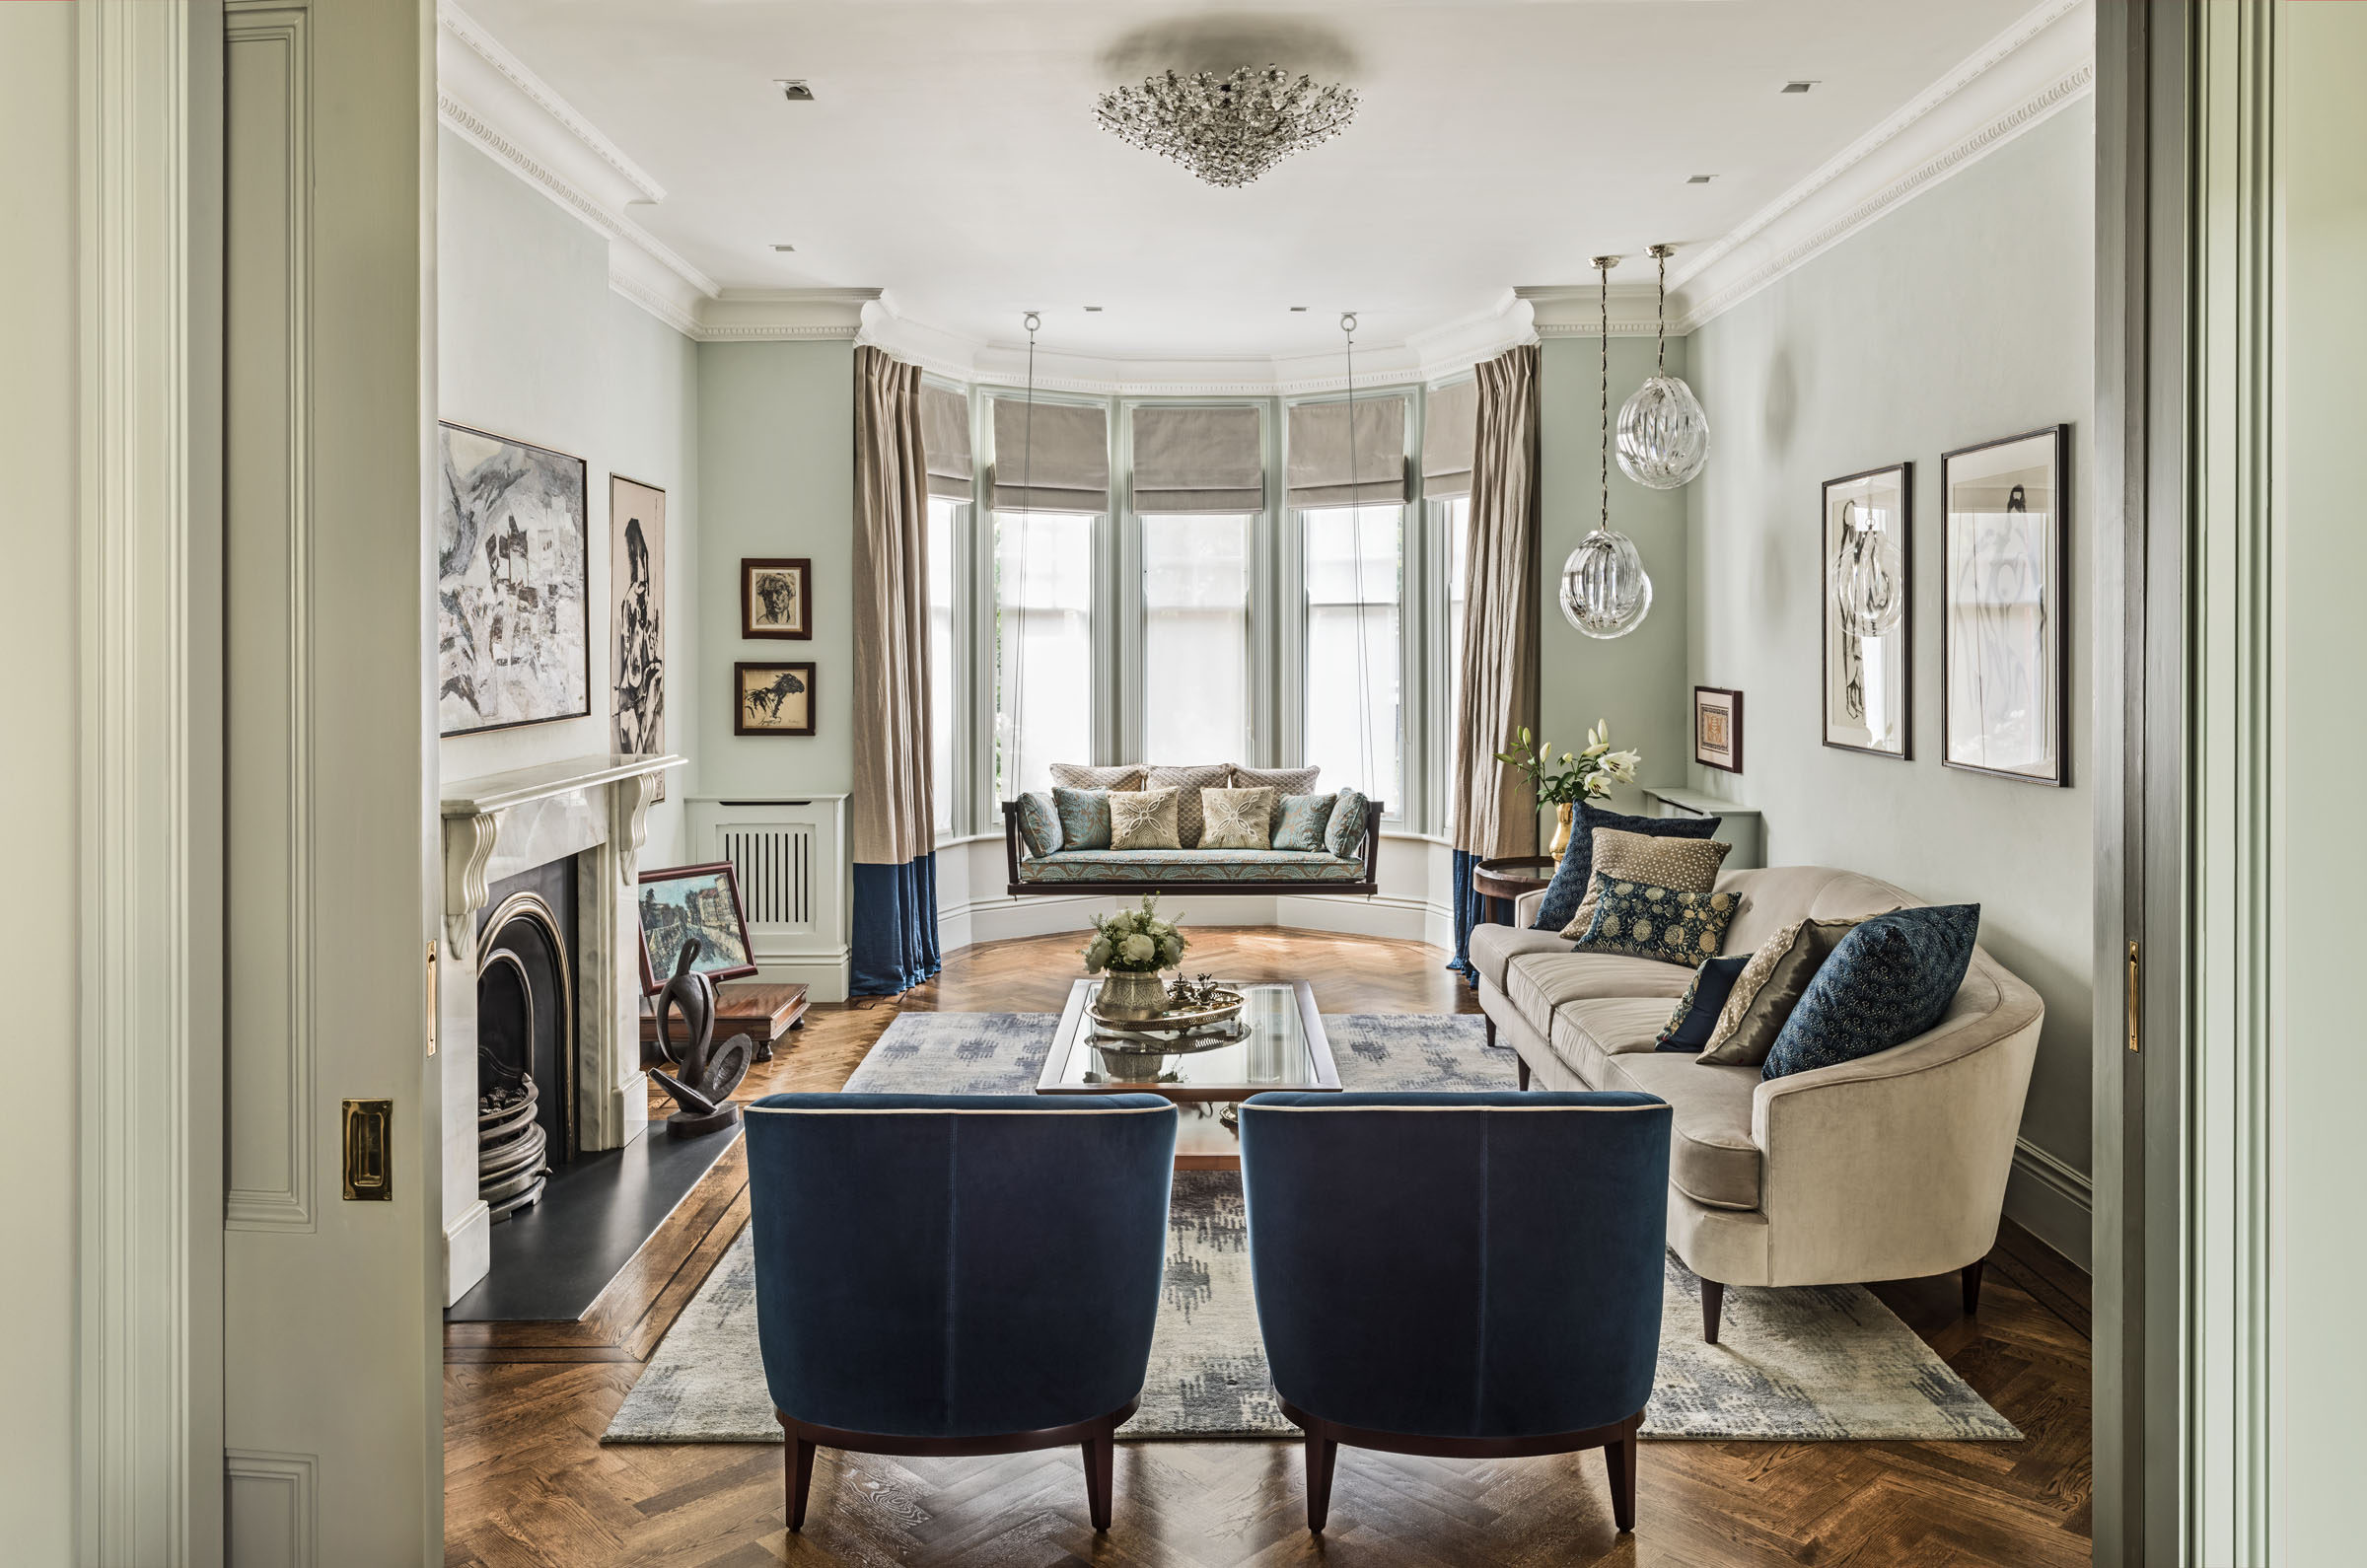 South hampstead house london luxury interior design for Dining room interior design ideas uk